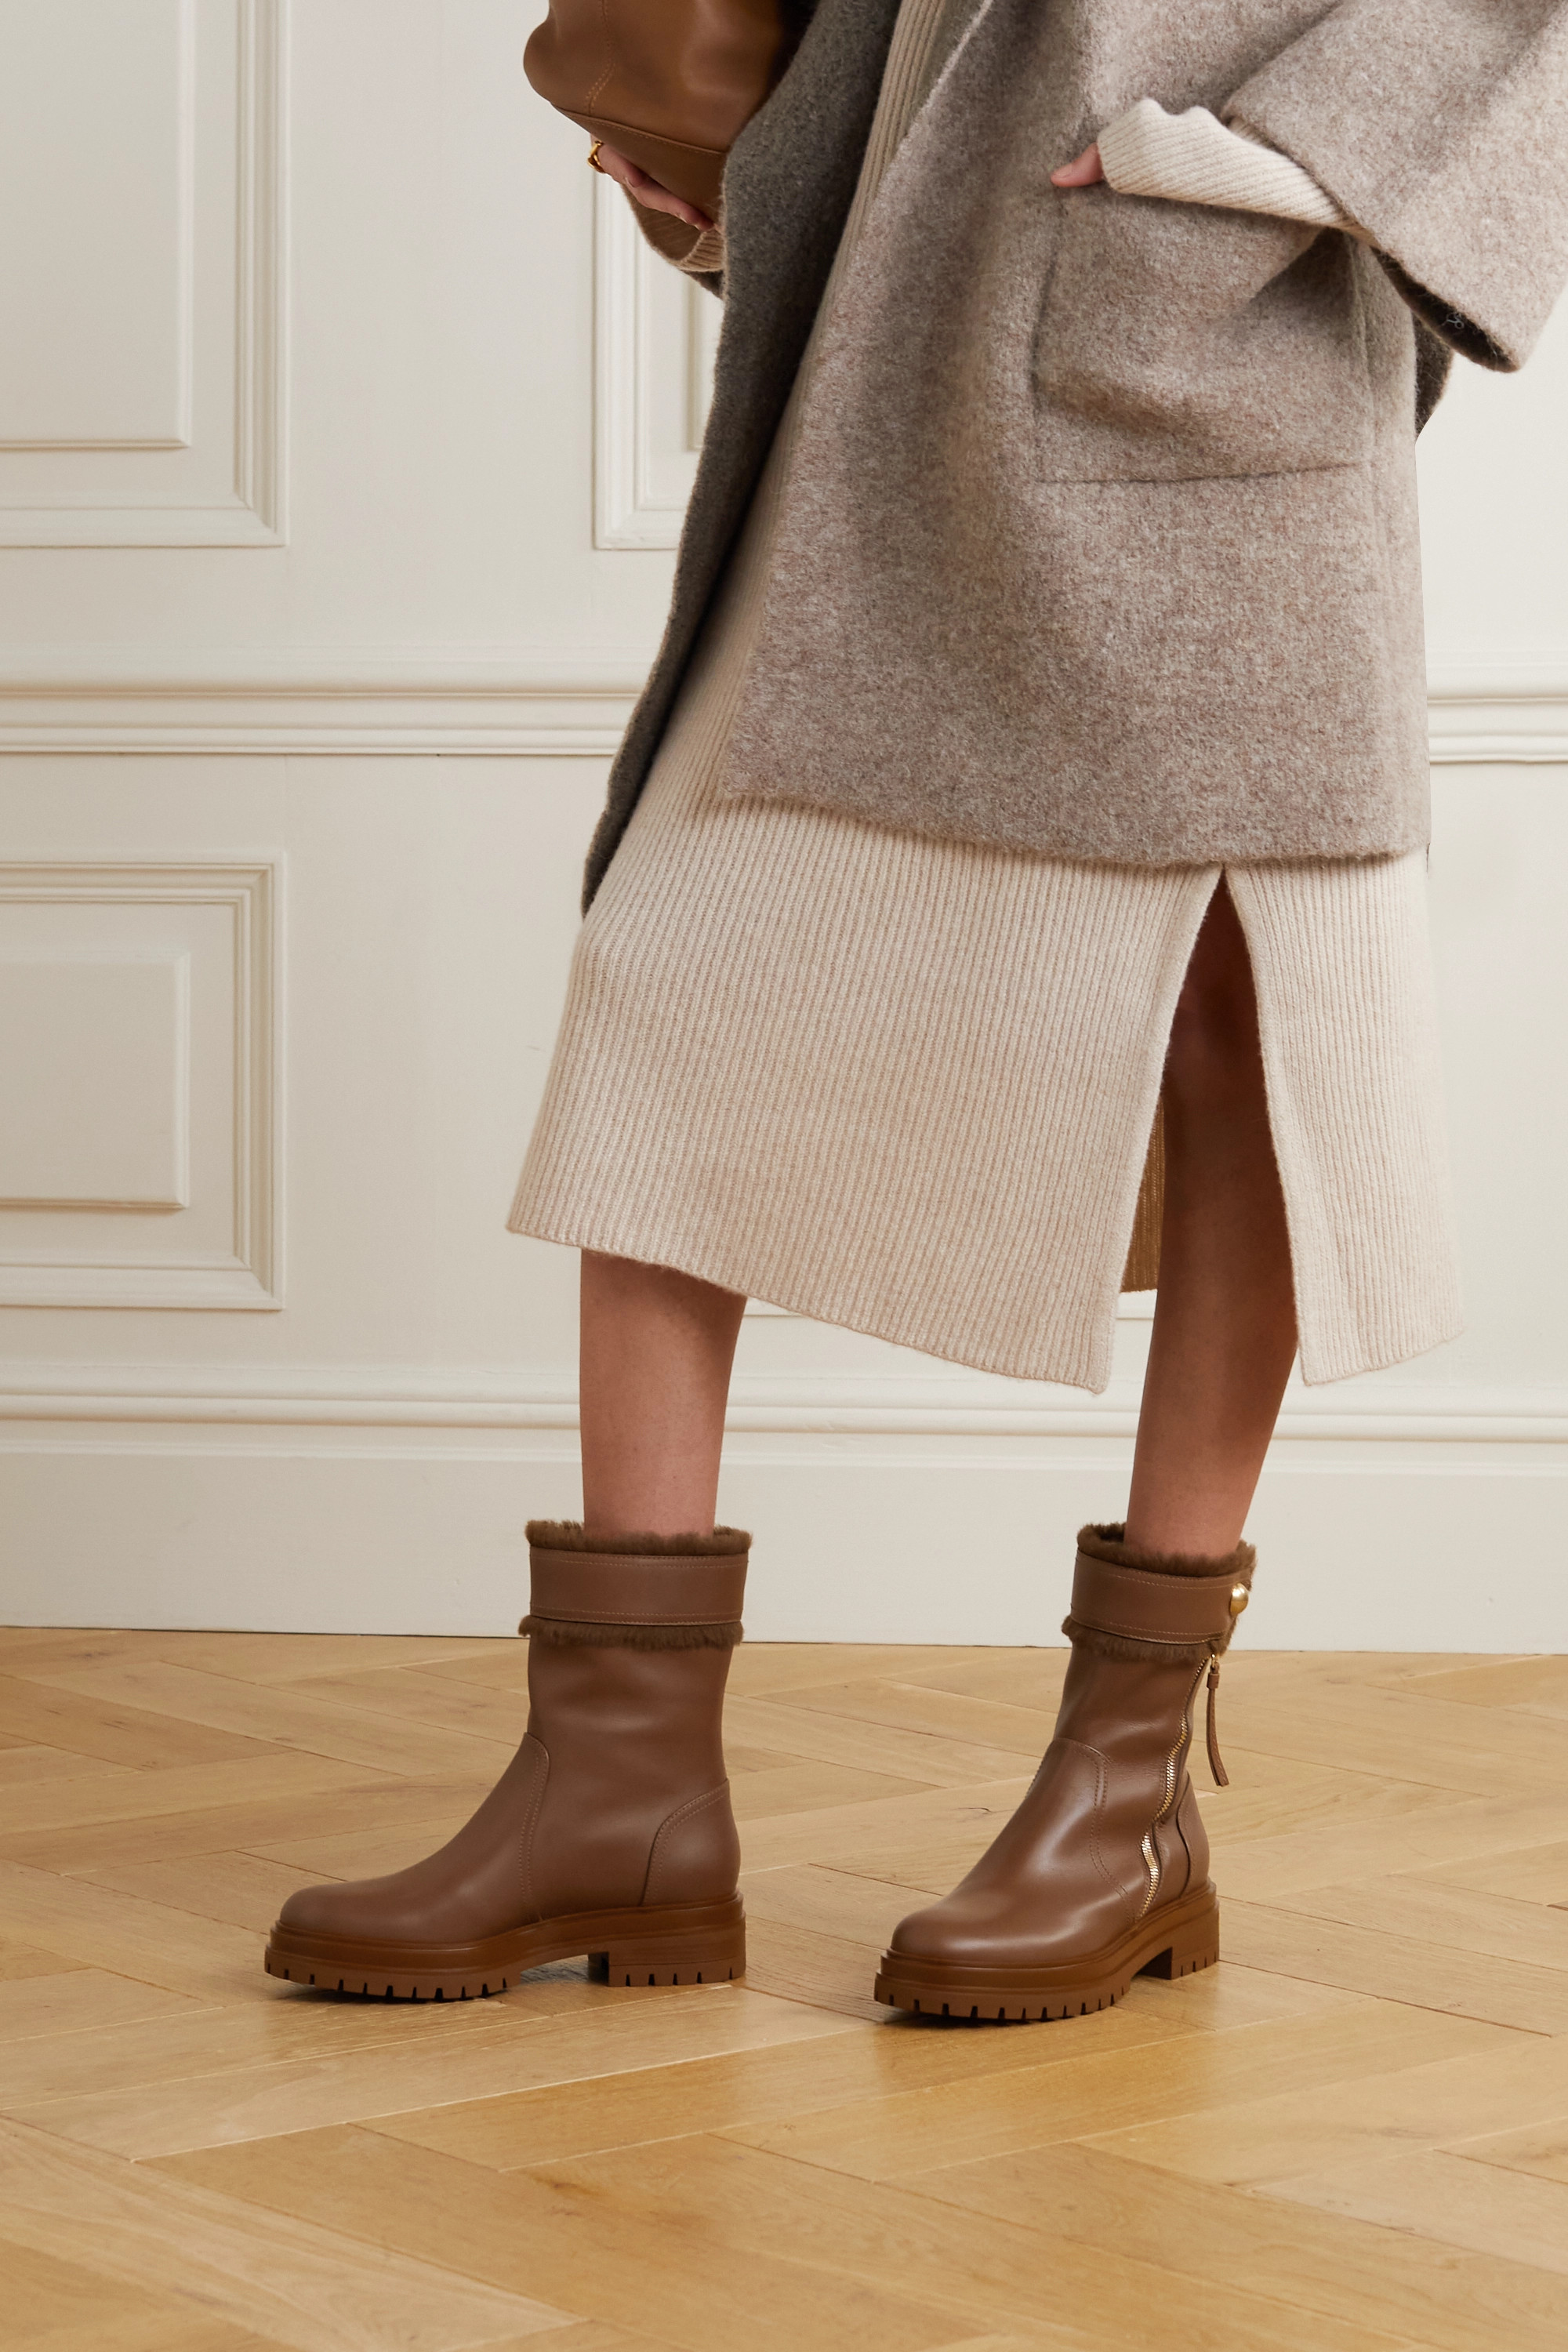 Gianvito Rossi Montreal shearling-trimmed leather ankle boots